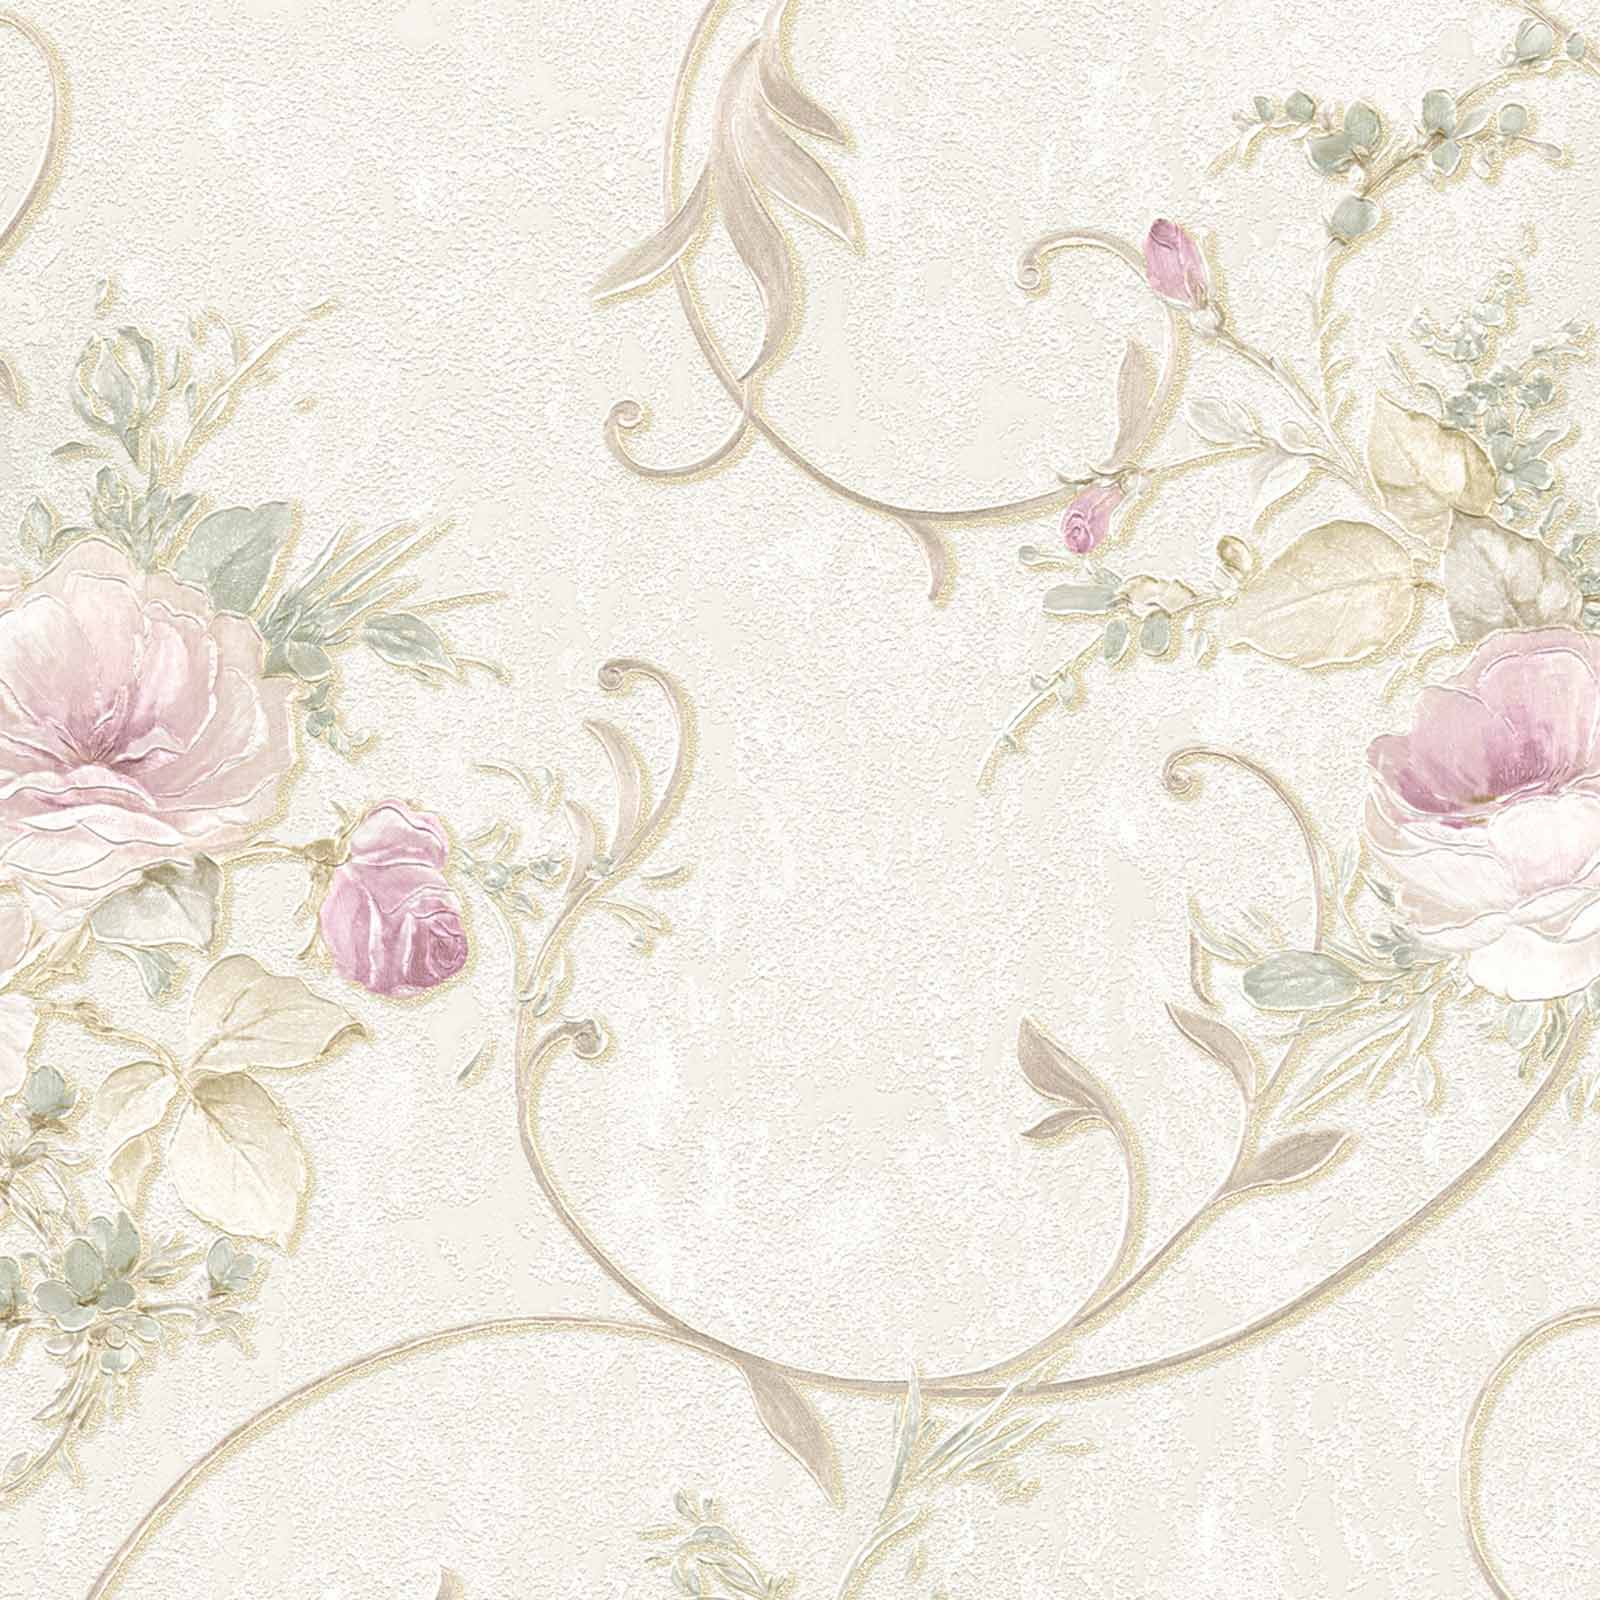 Non Woven Wallpaper Floral Baroque Beige Gold 30420 2